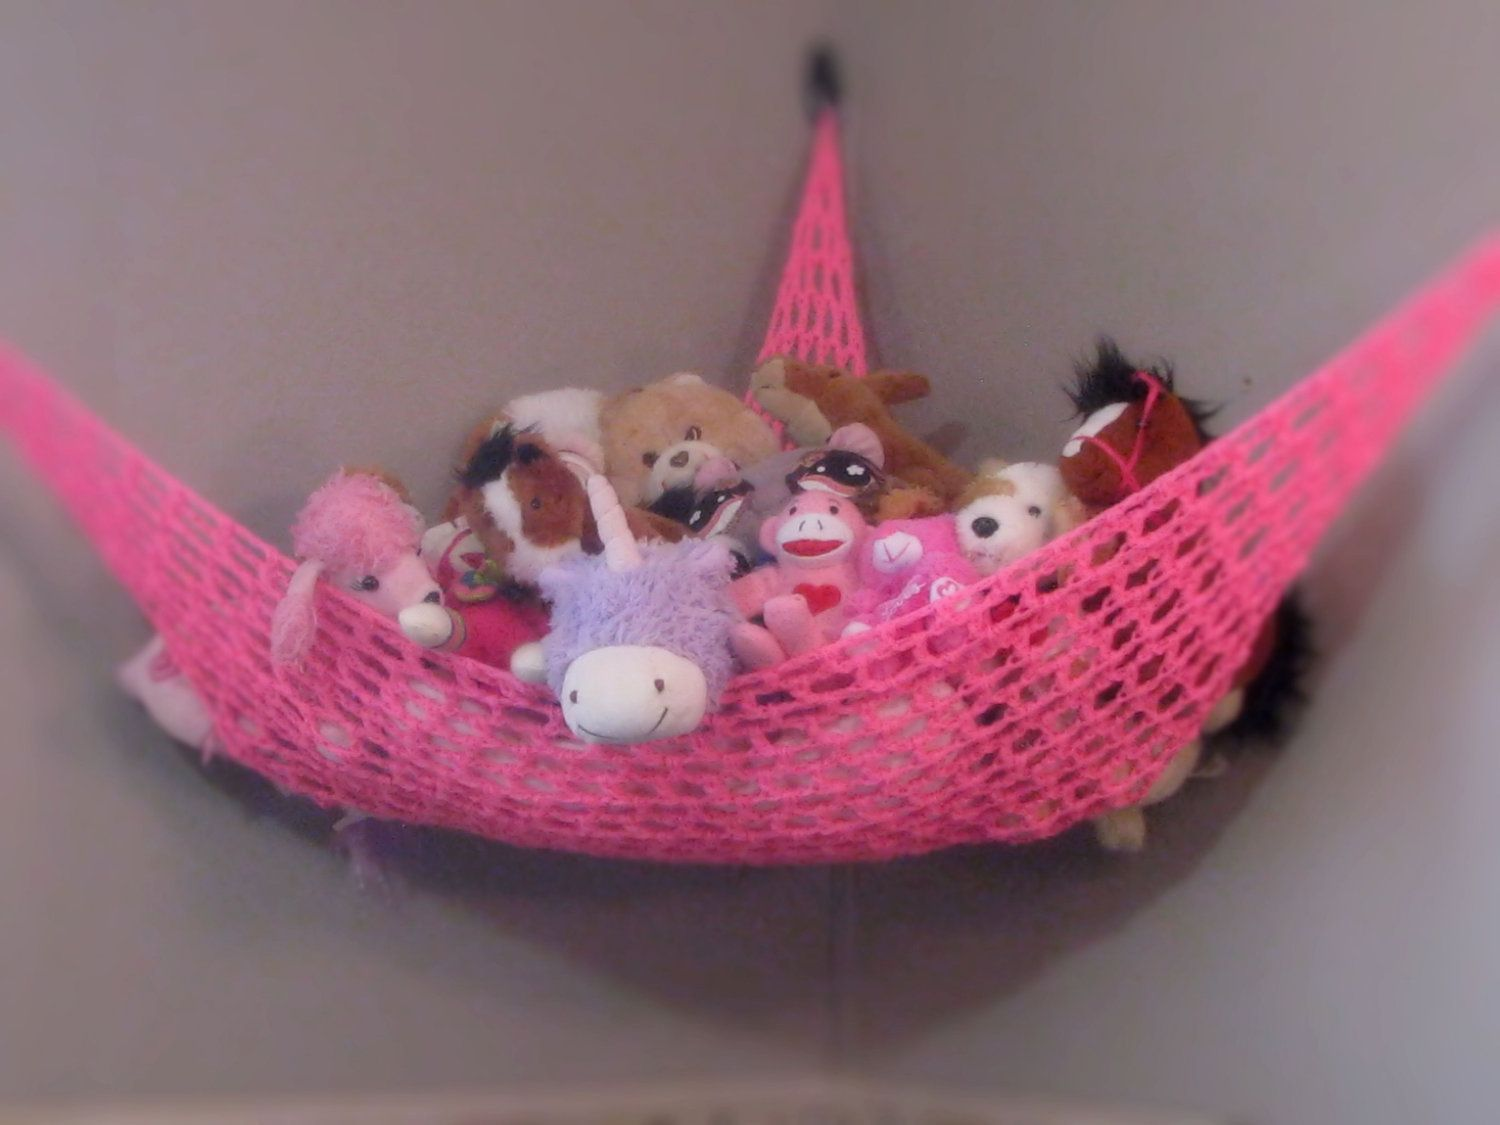 crochet toy hammock stuffed animal     nursery and childrens room storage in pink crochet toy hammock stuffed animal     nursery and childrens      rh   pinterest